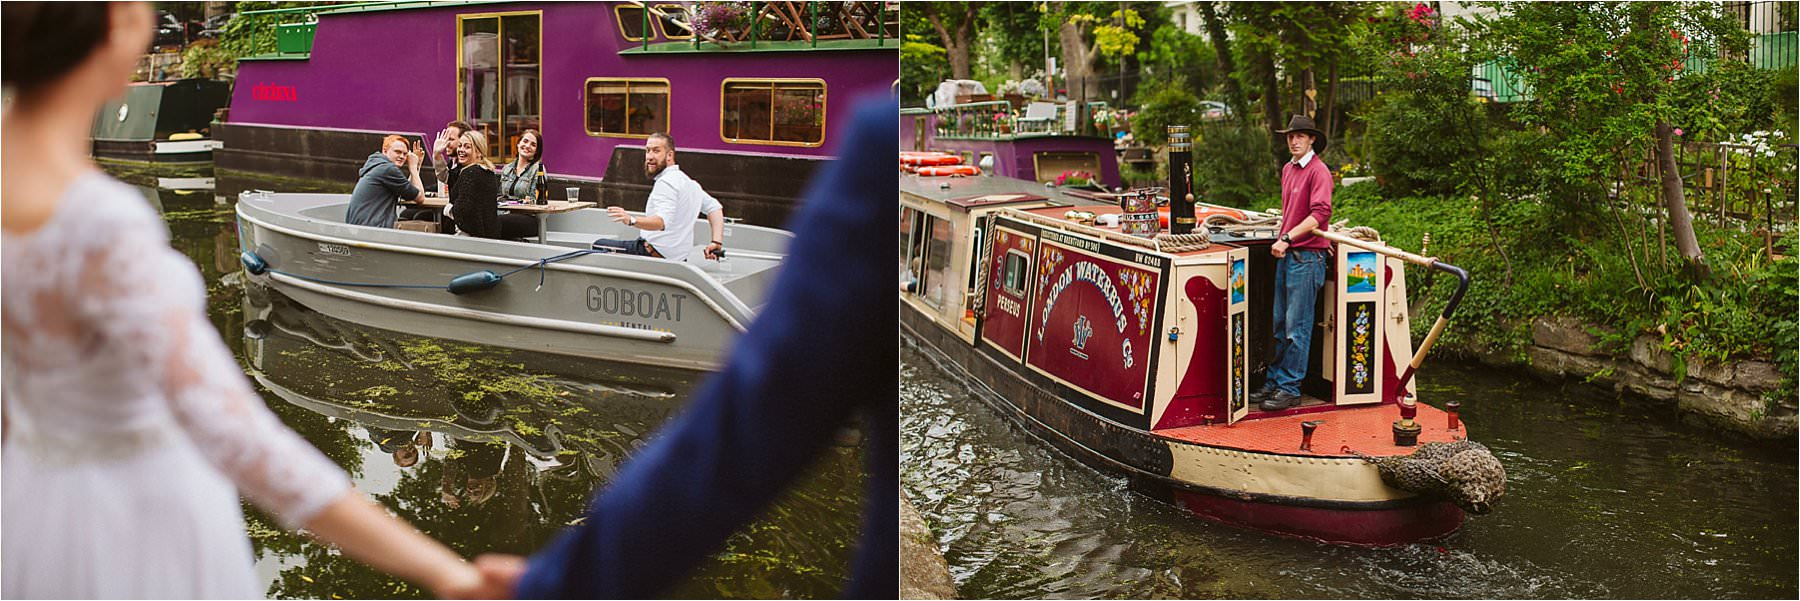 barges on a canal in Little venice wedding